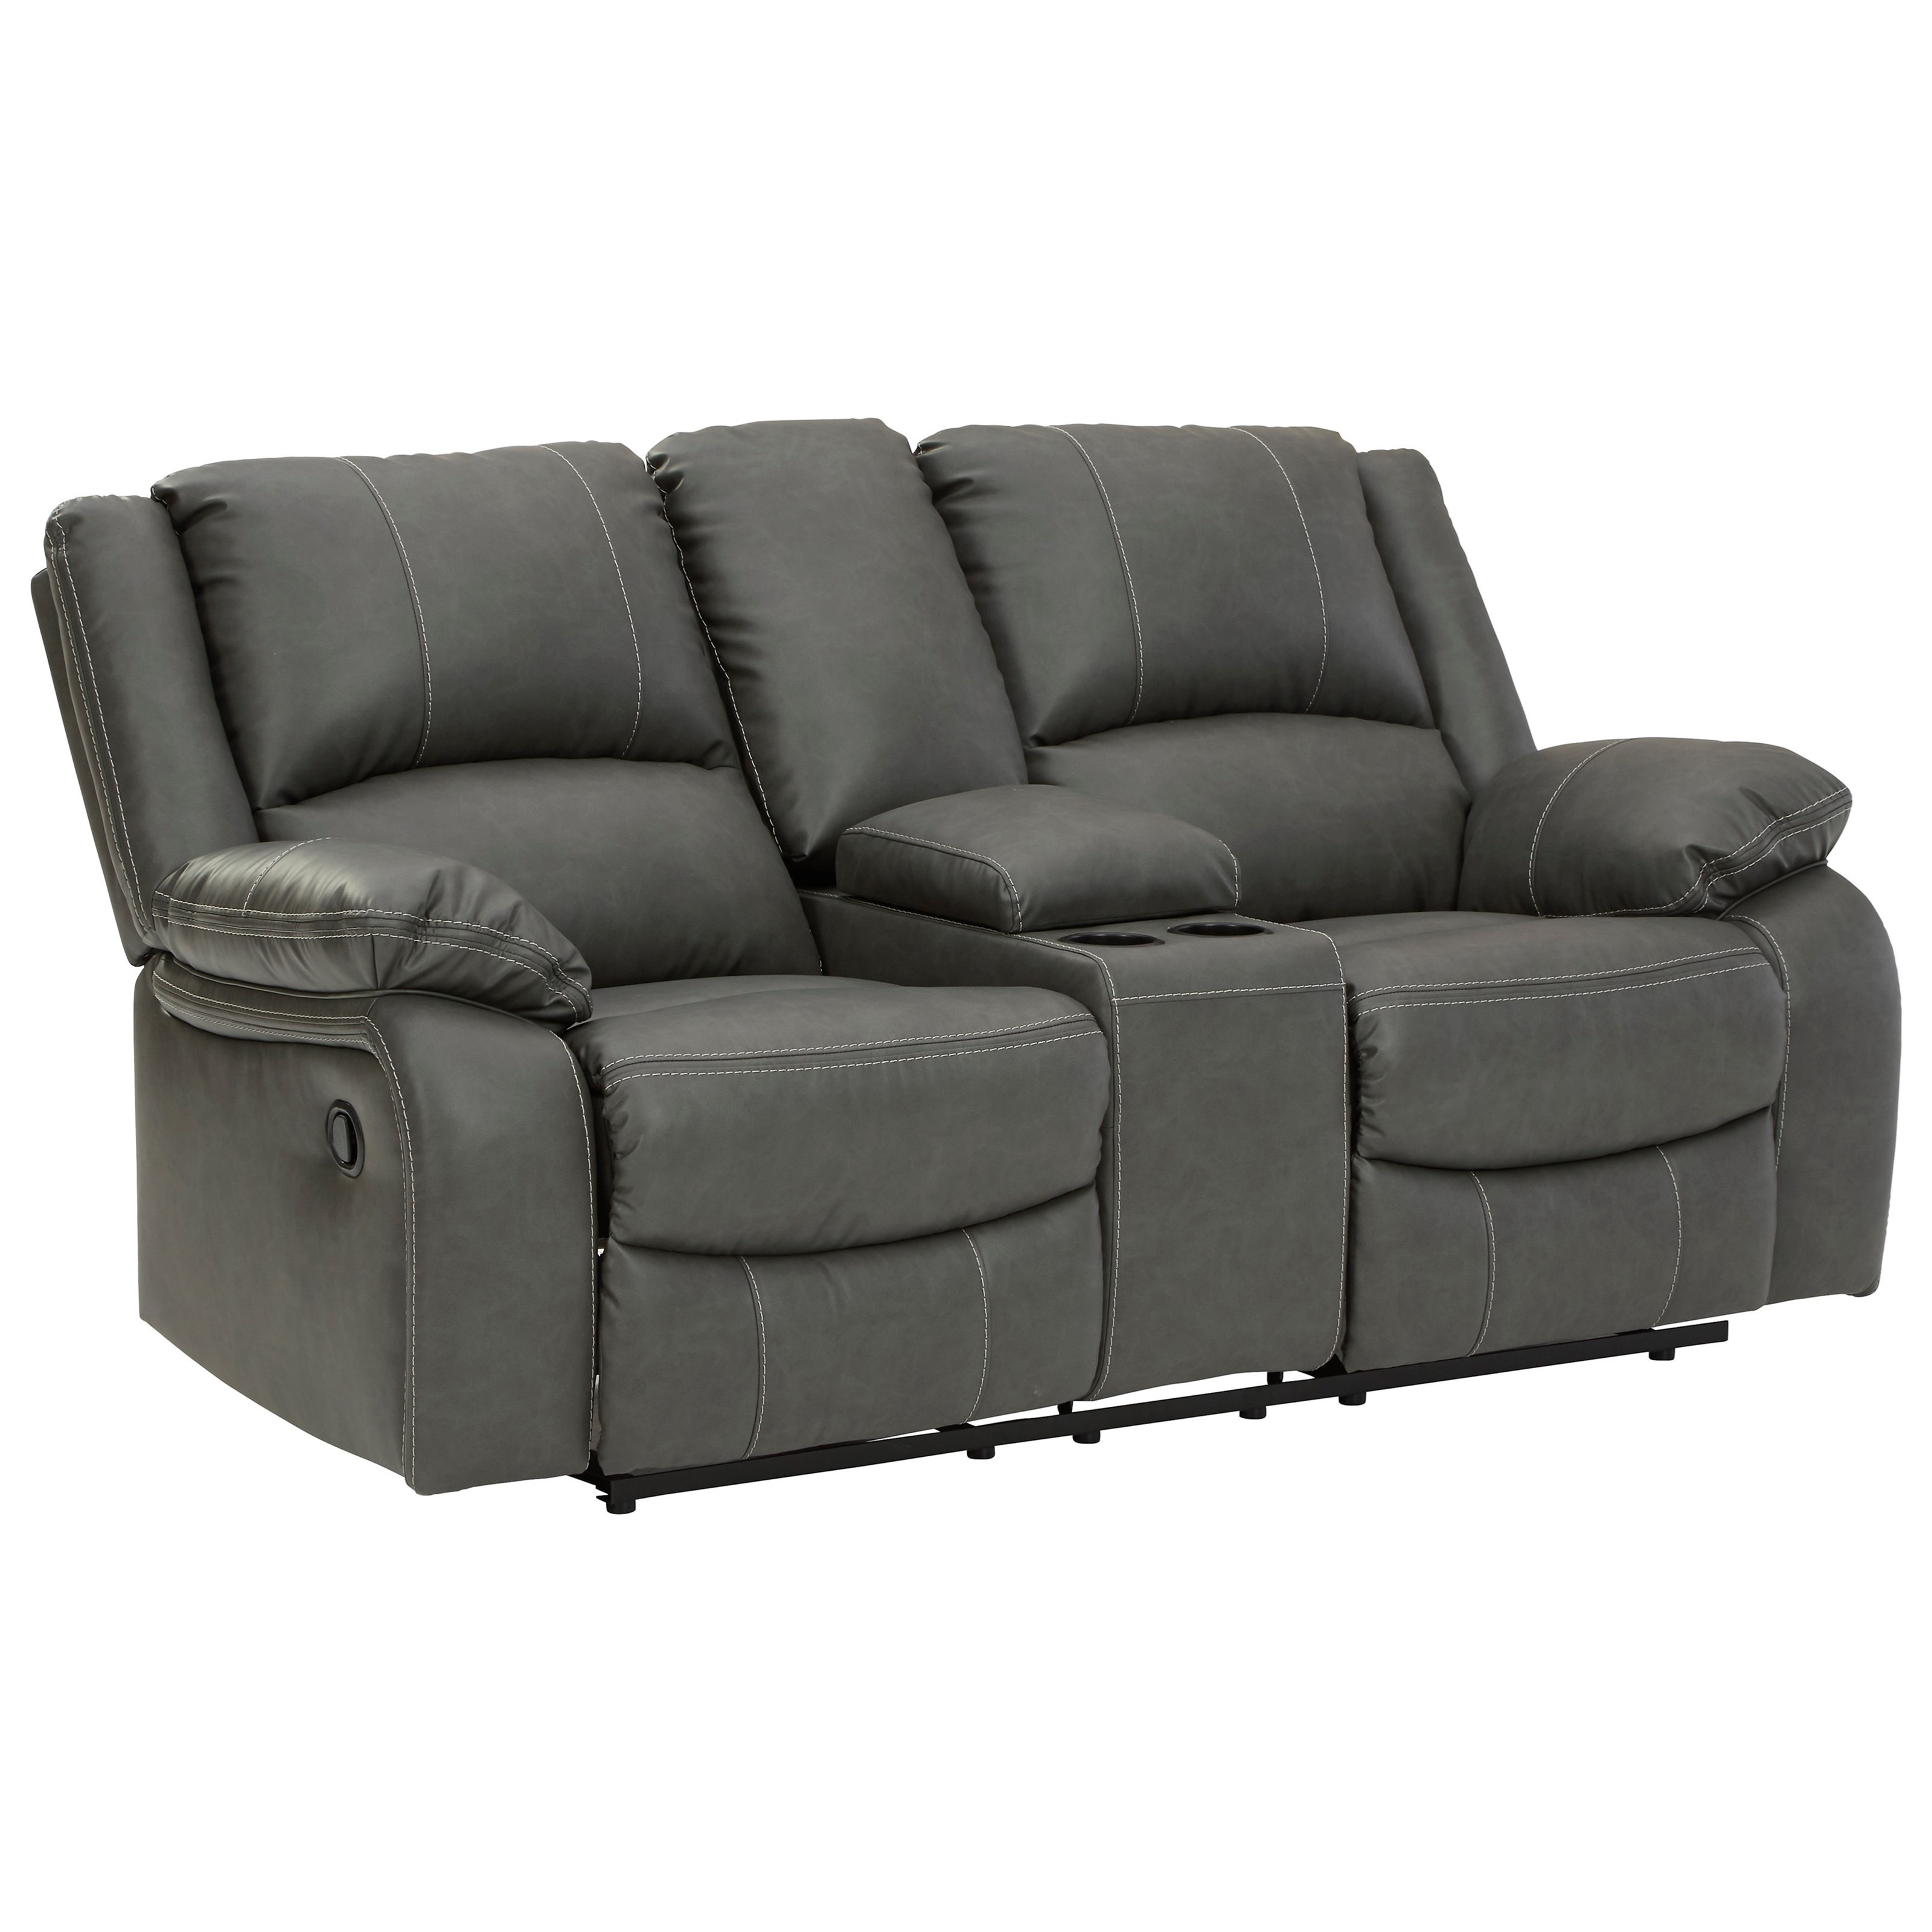 Double Rec Loveseat w/ Console